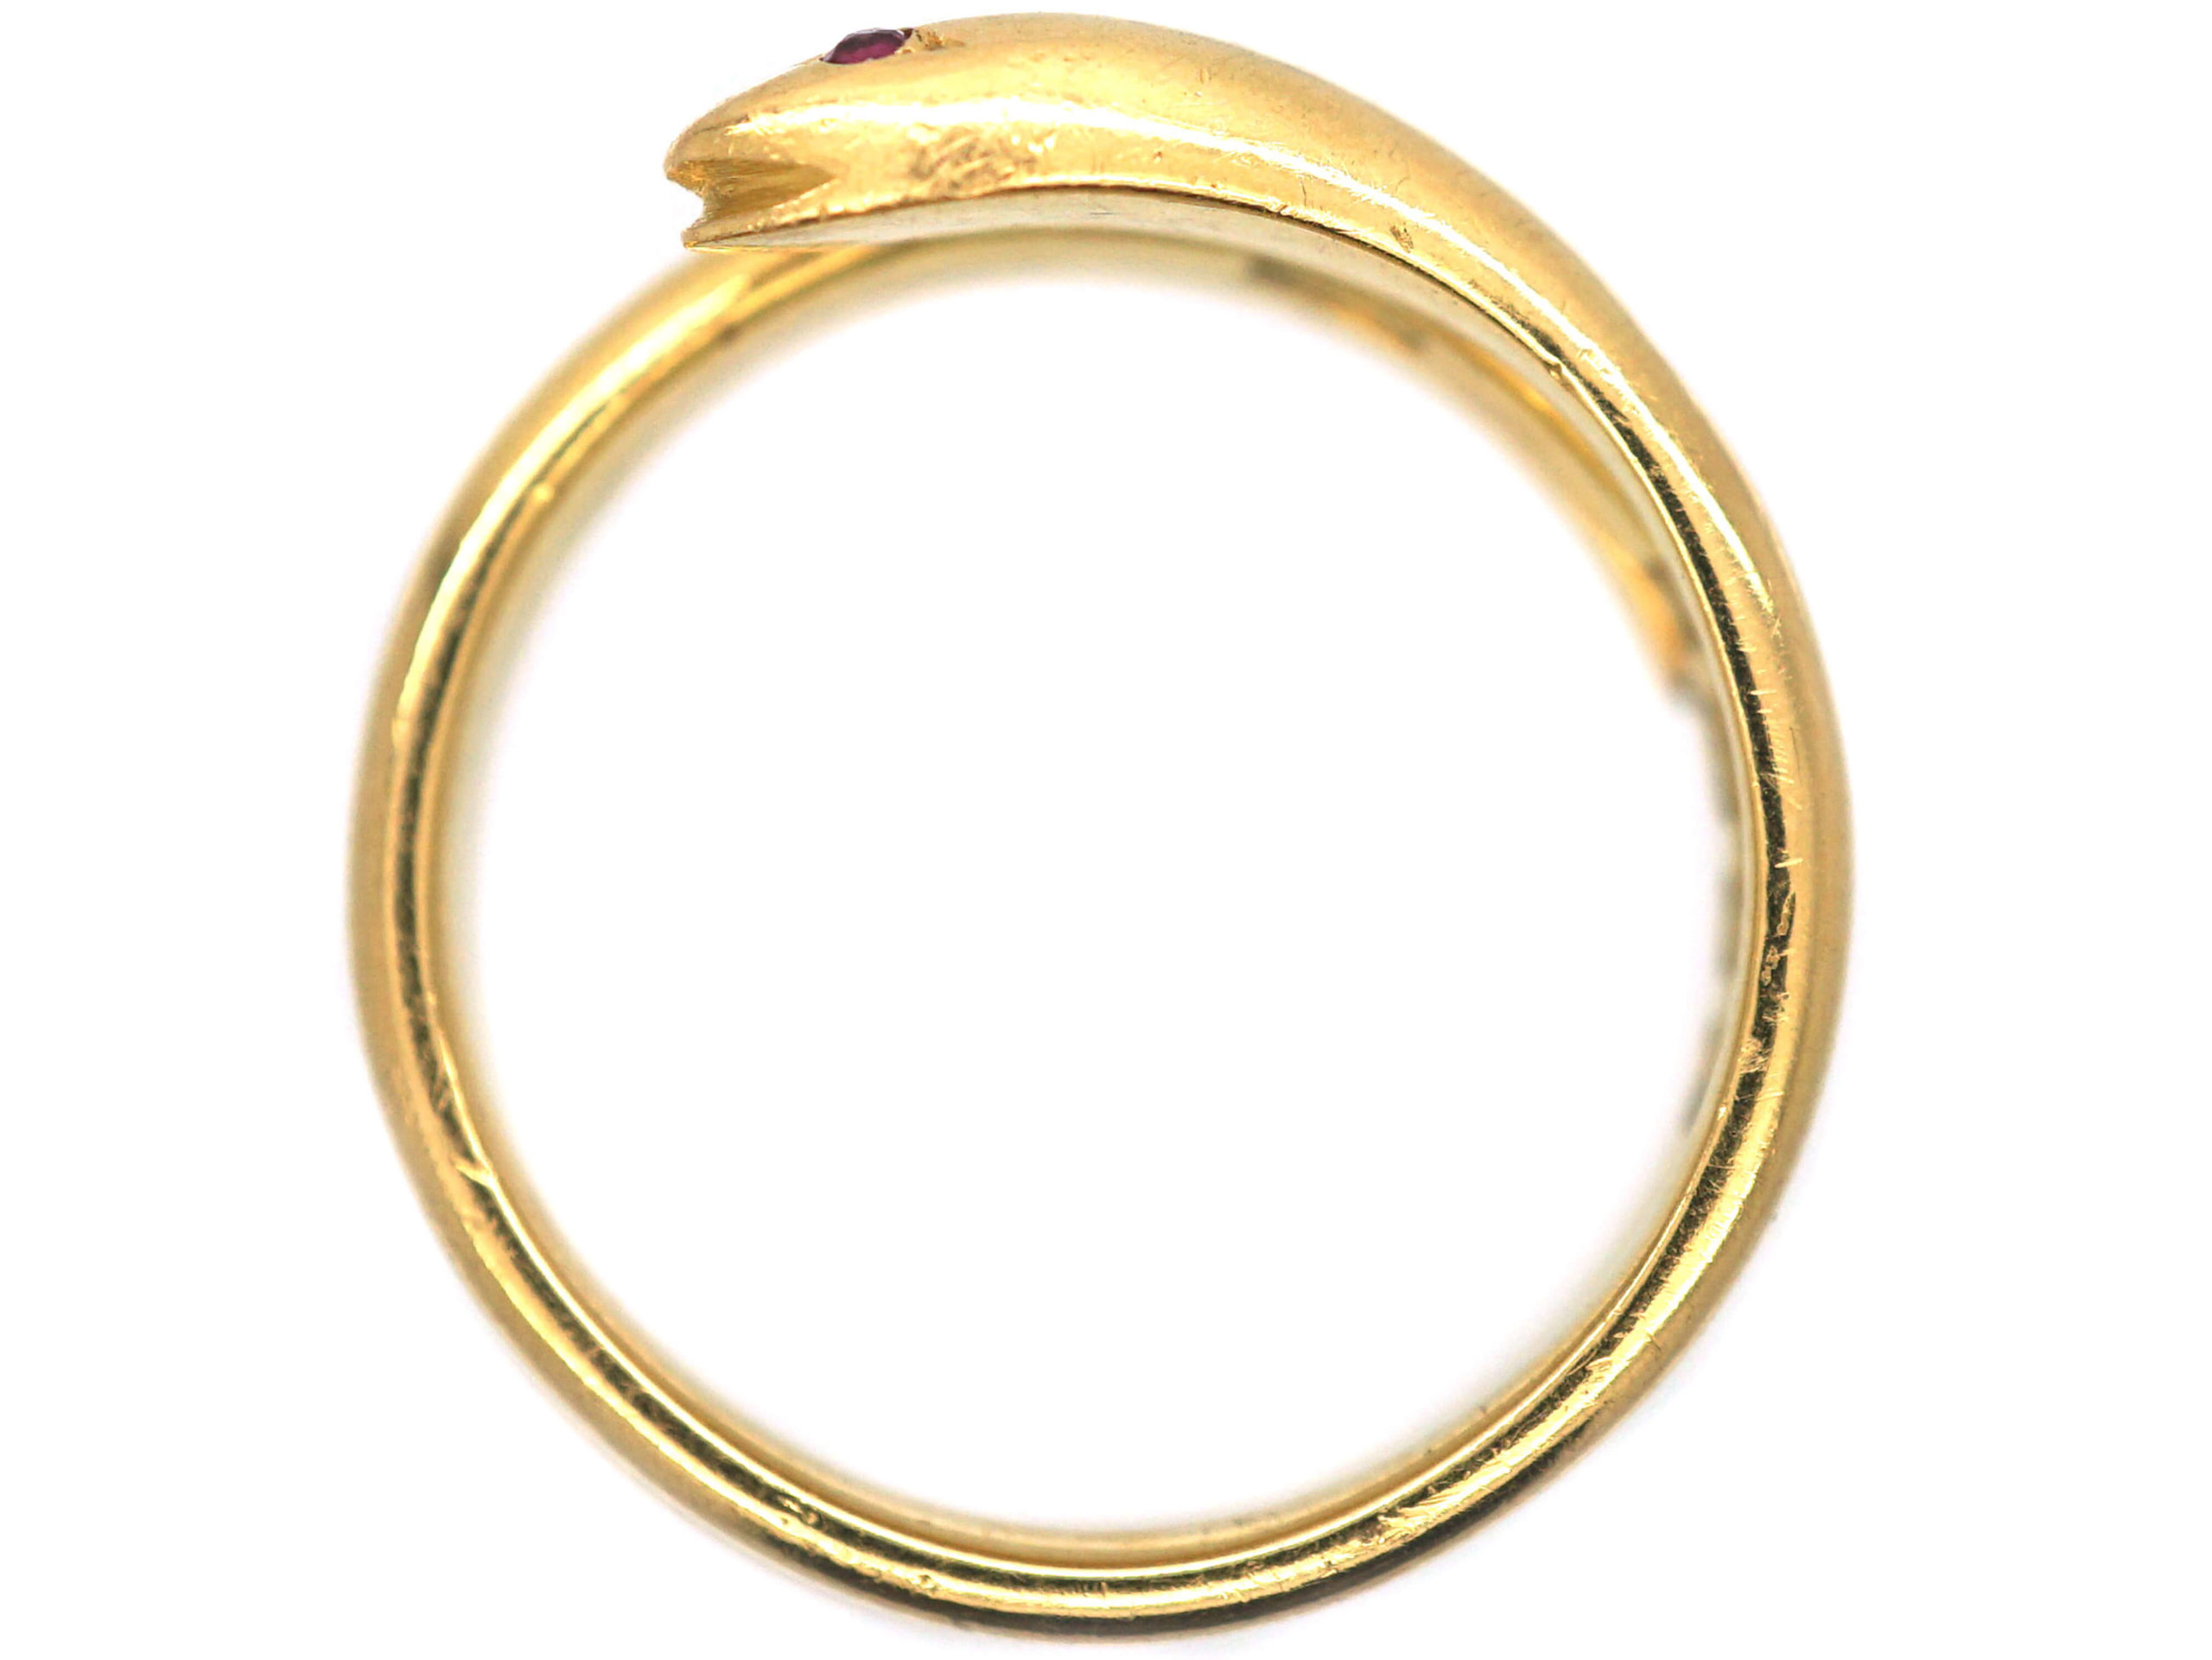 Victorian 18ct Gold Snake Ring with Ruby Eyes